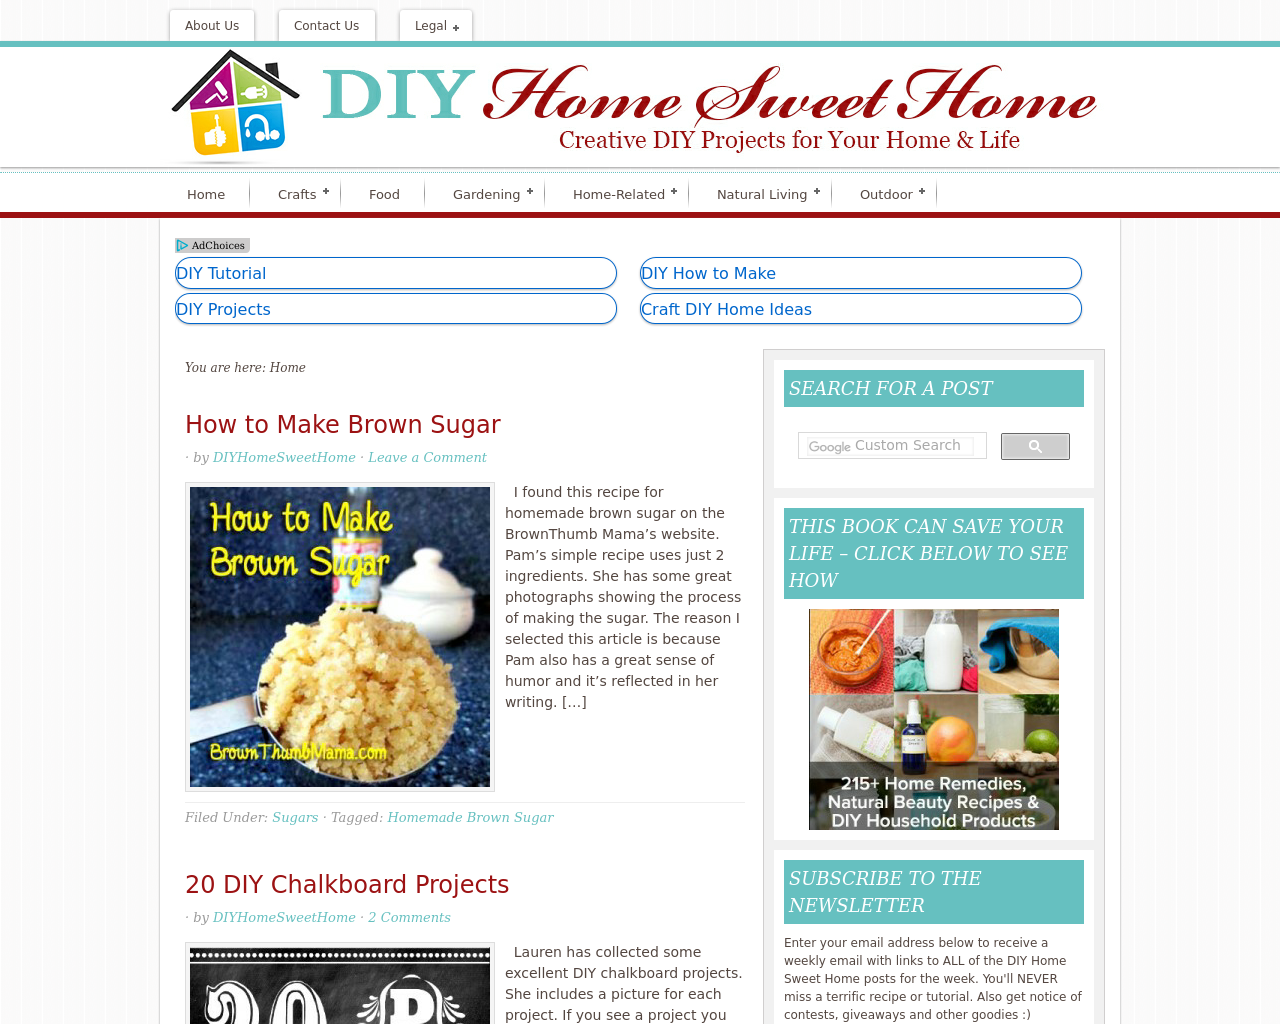 DIY-Home-Sweet-Home-Advertising-Reviews-Pricing